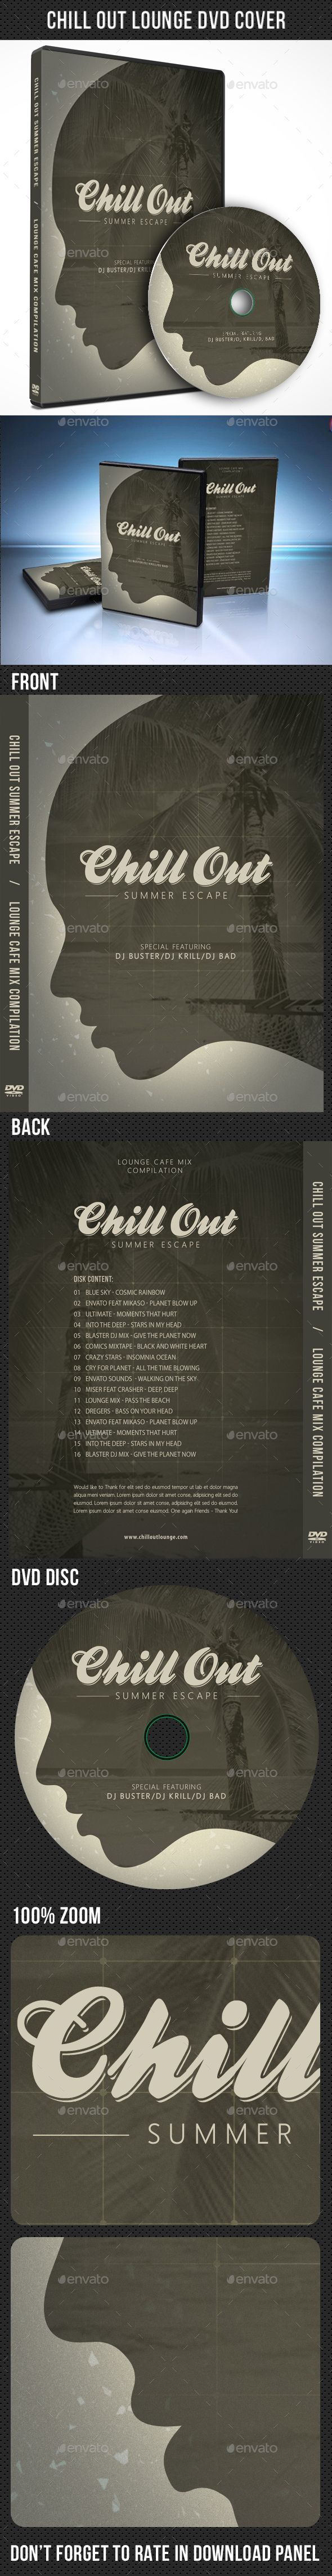 Chill Out Lounge CD Cover V02